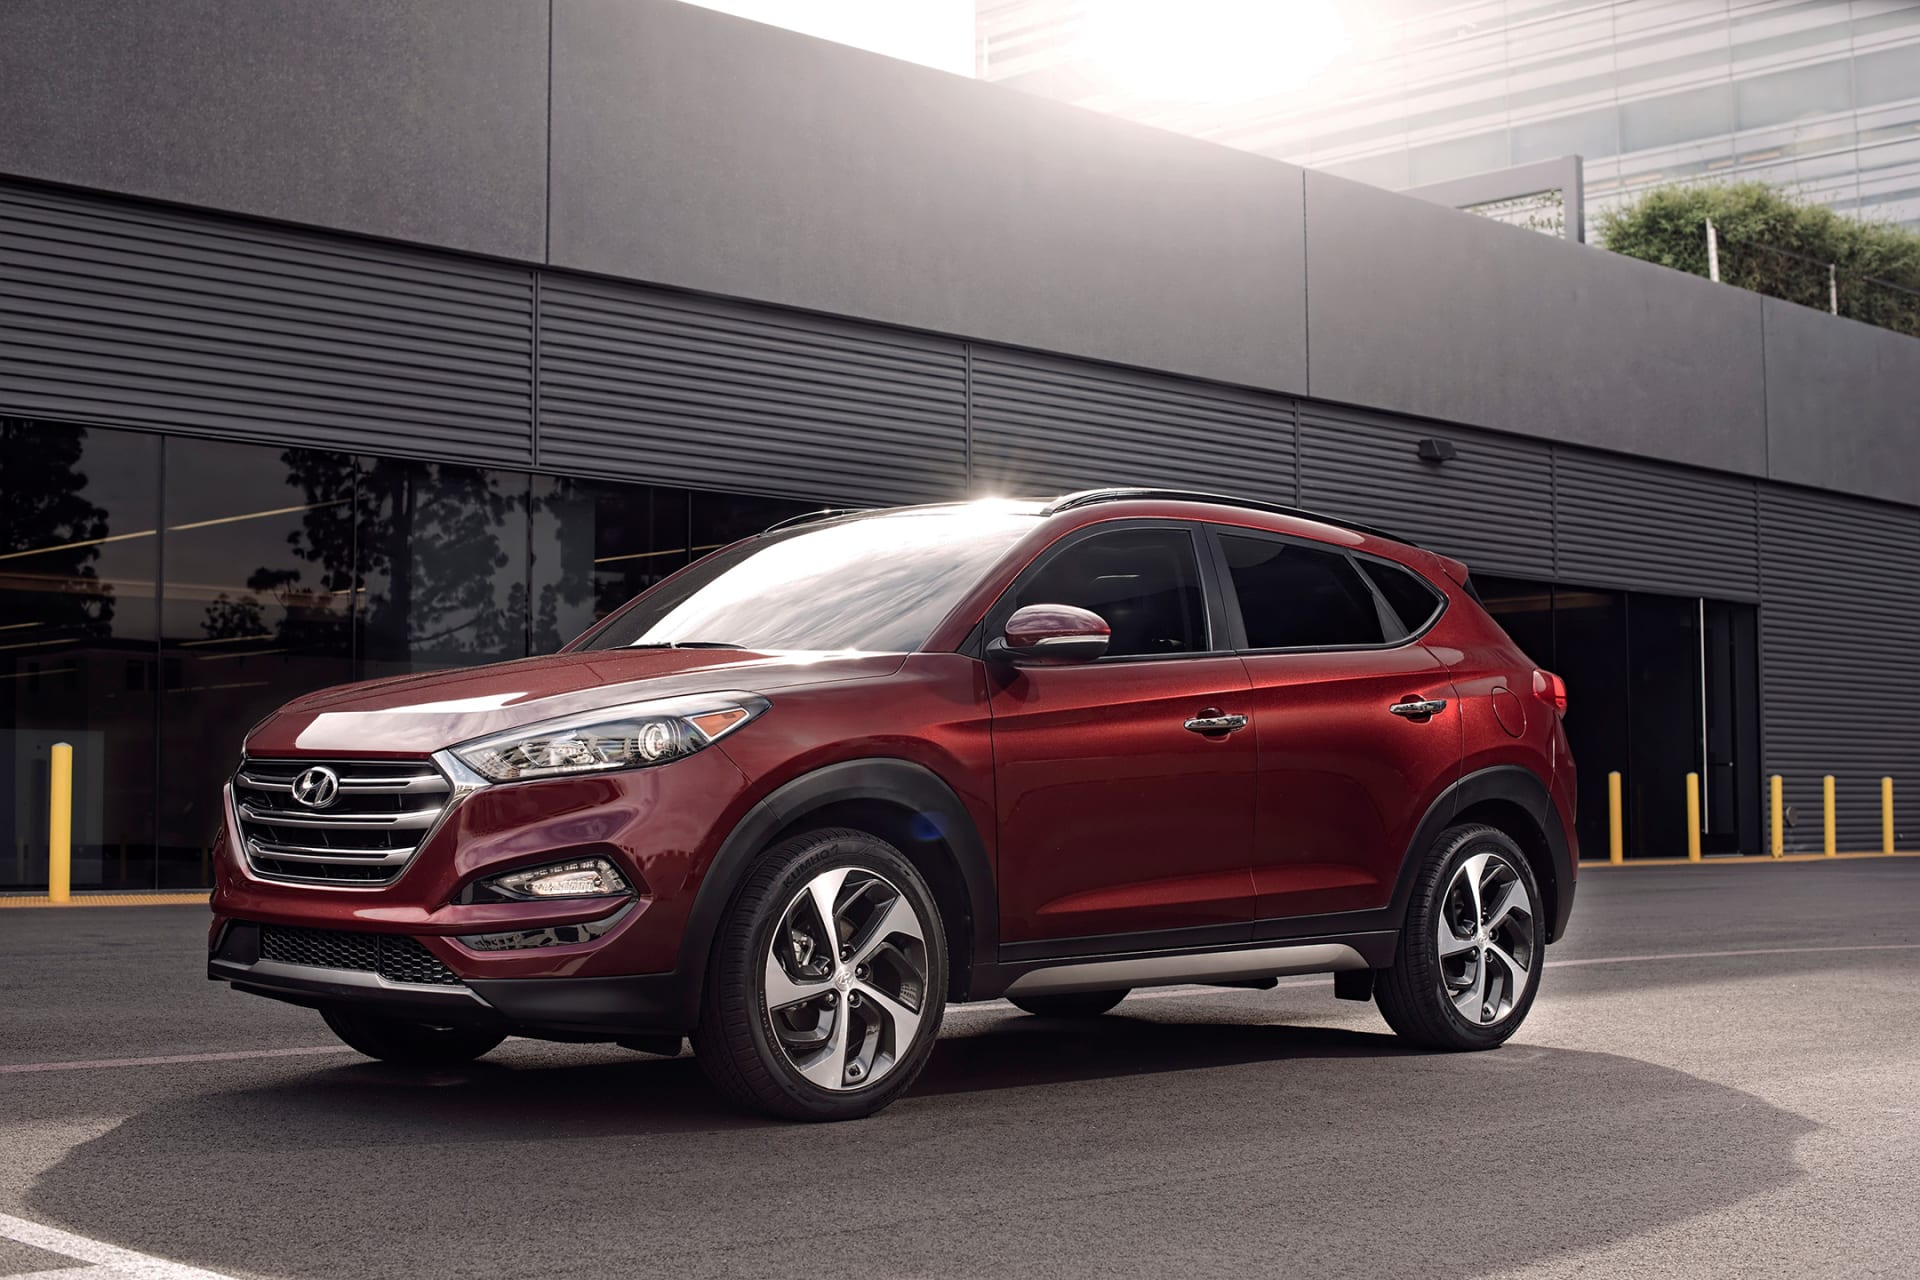 Redesigned 2016 Hyundai Tucson Starts At 23 595 Goes On Sale Late